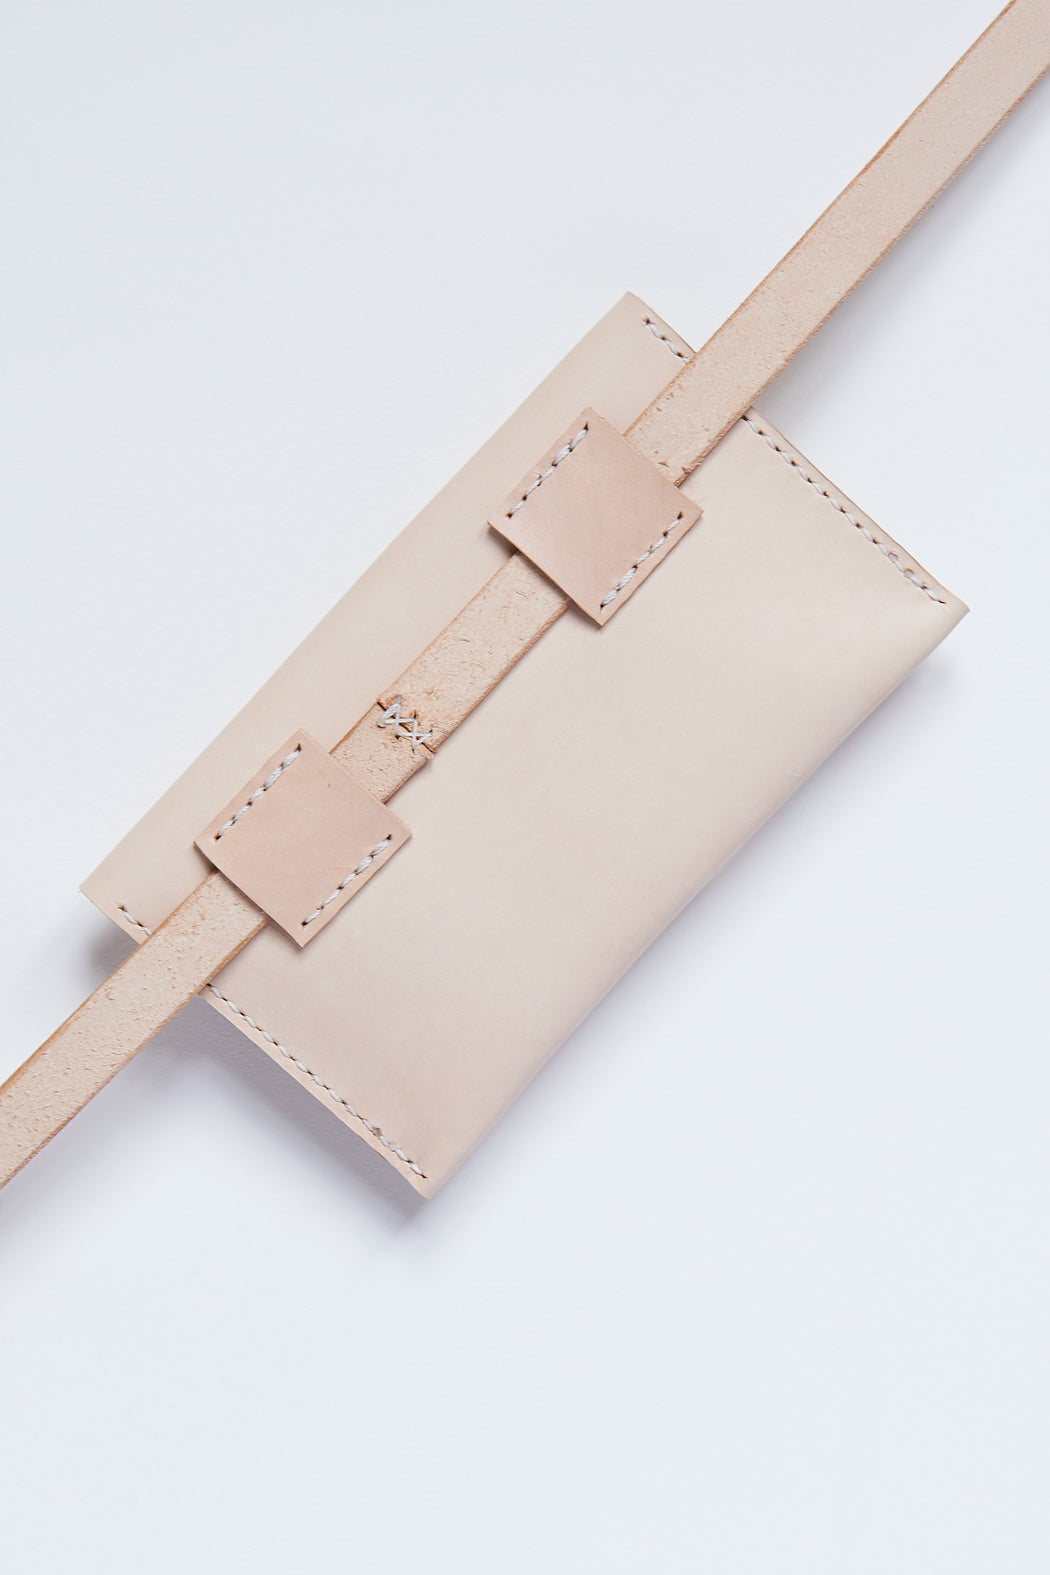 PM Leather Waist Pocket - Natural